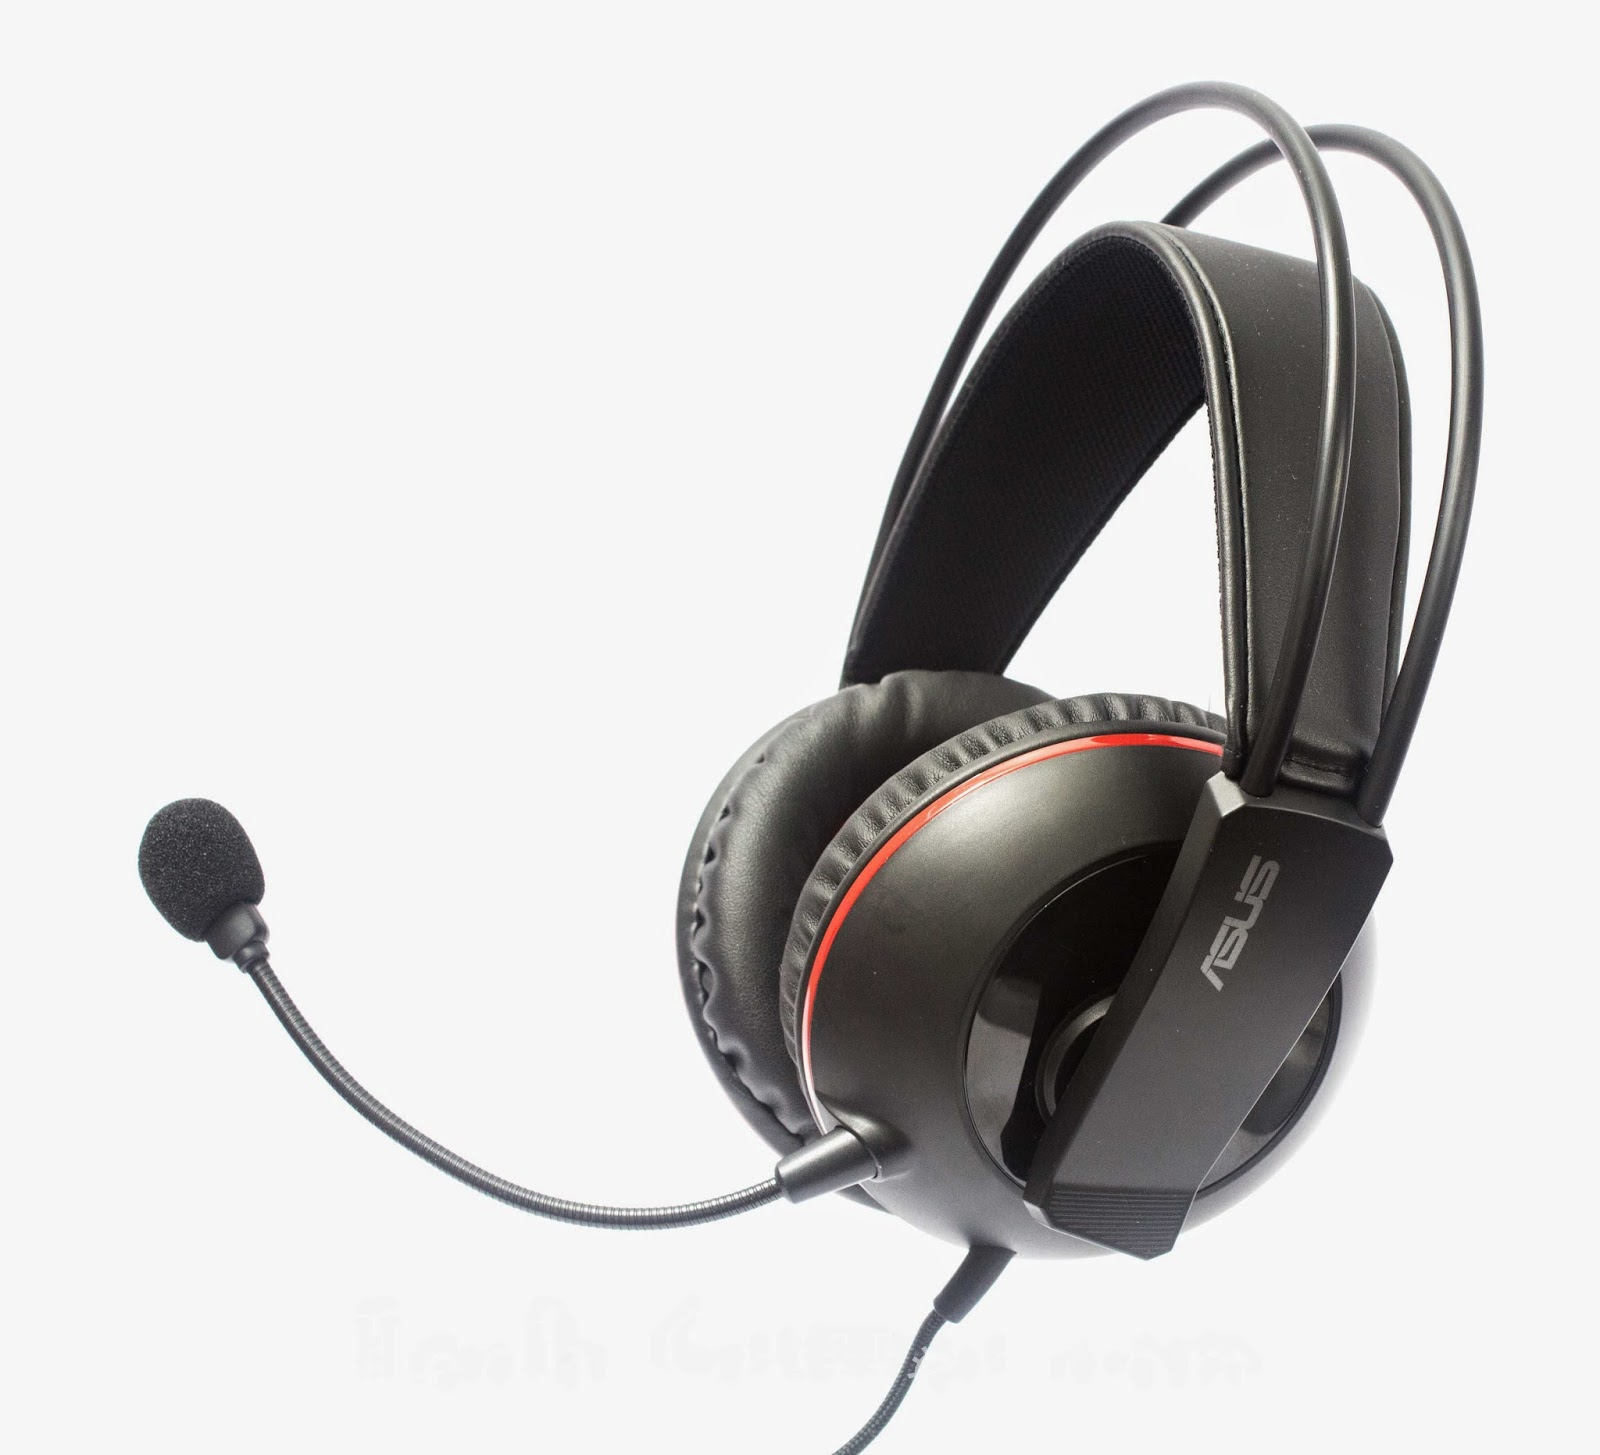 Unboxing & Review: ASUS Cerberus Gaming Headset 7